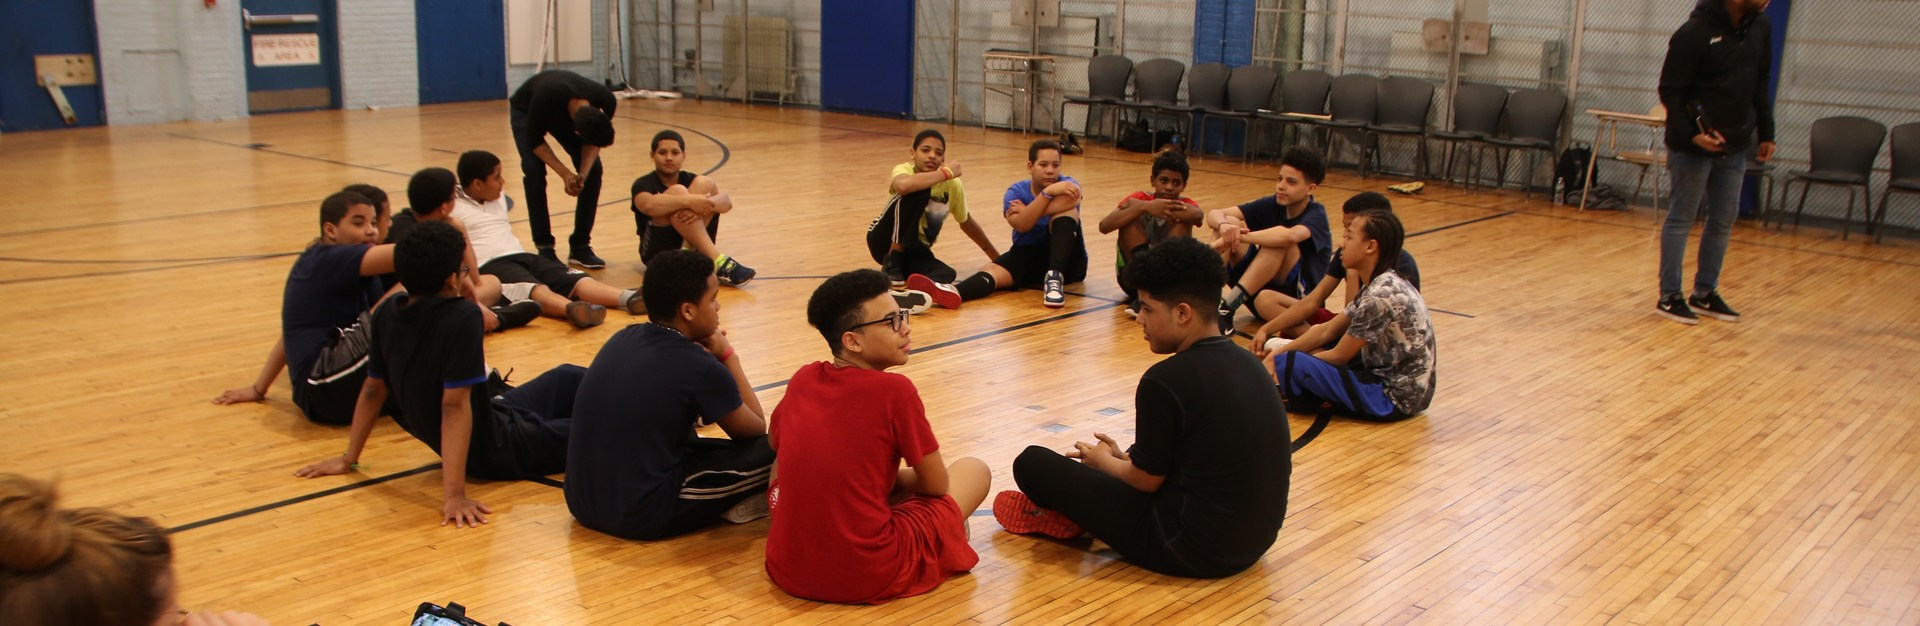 A group of boys sitting in a circle in the gym